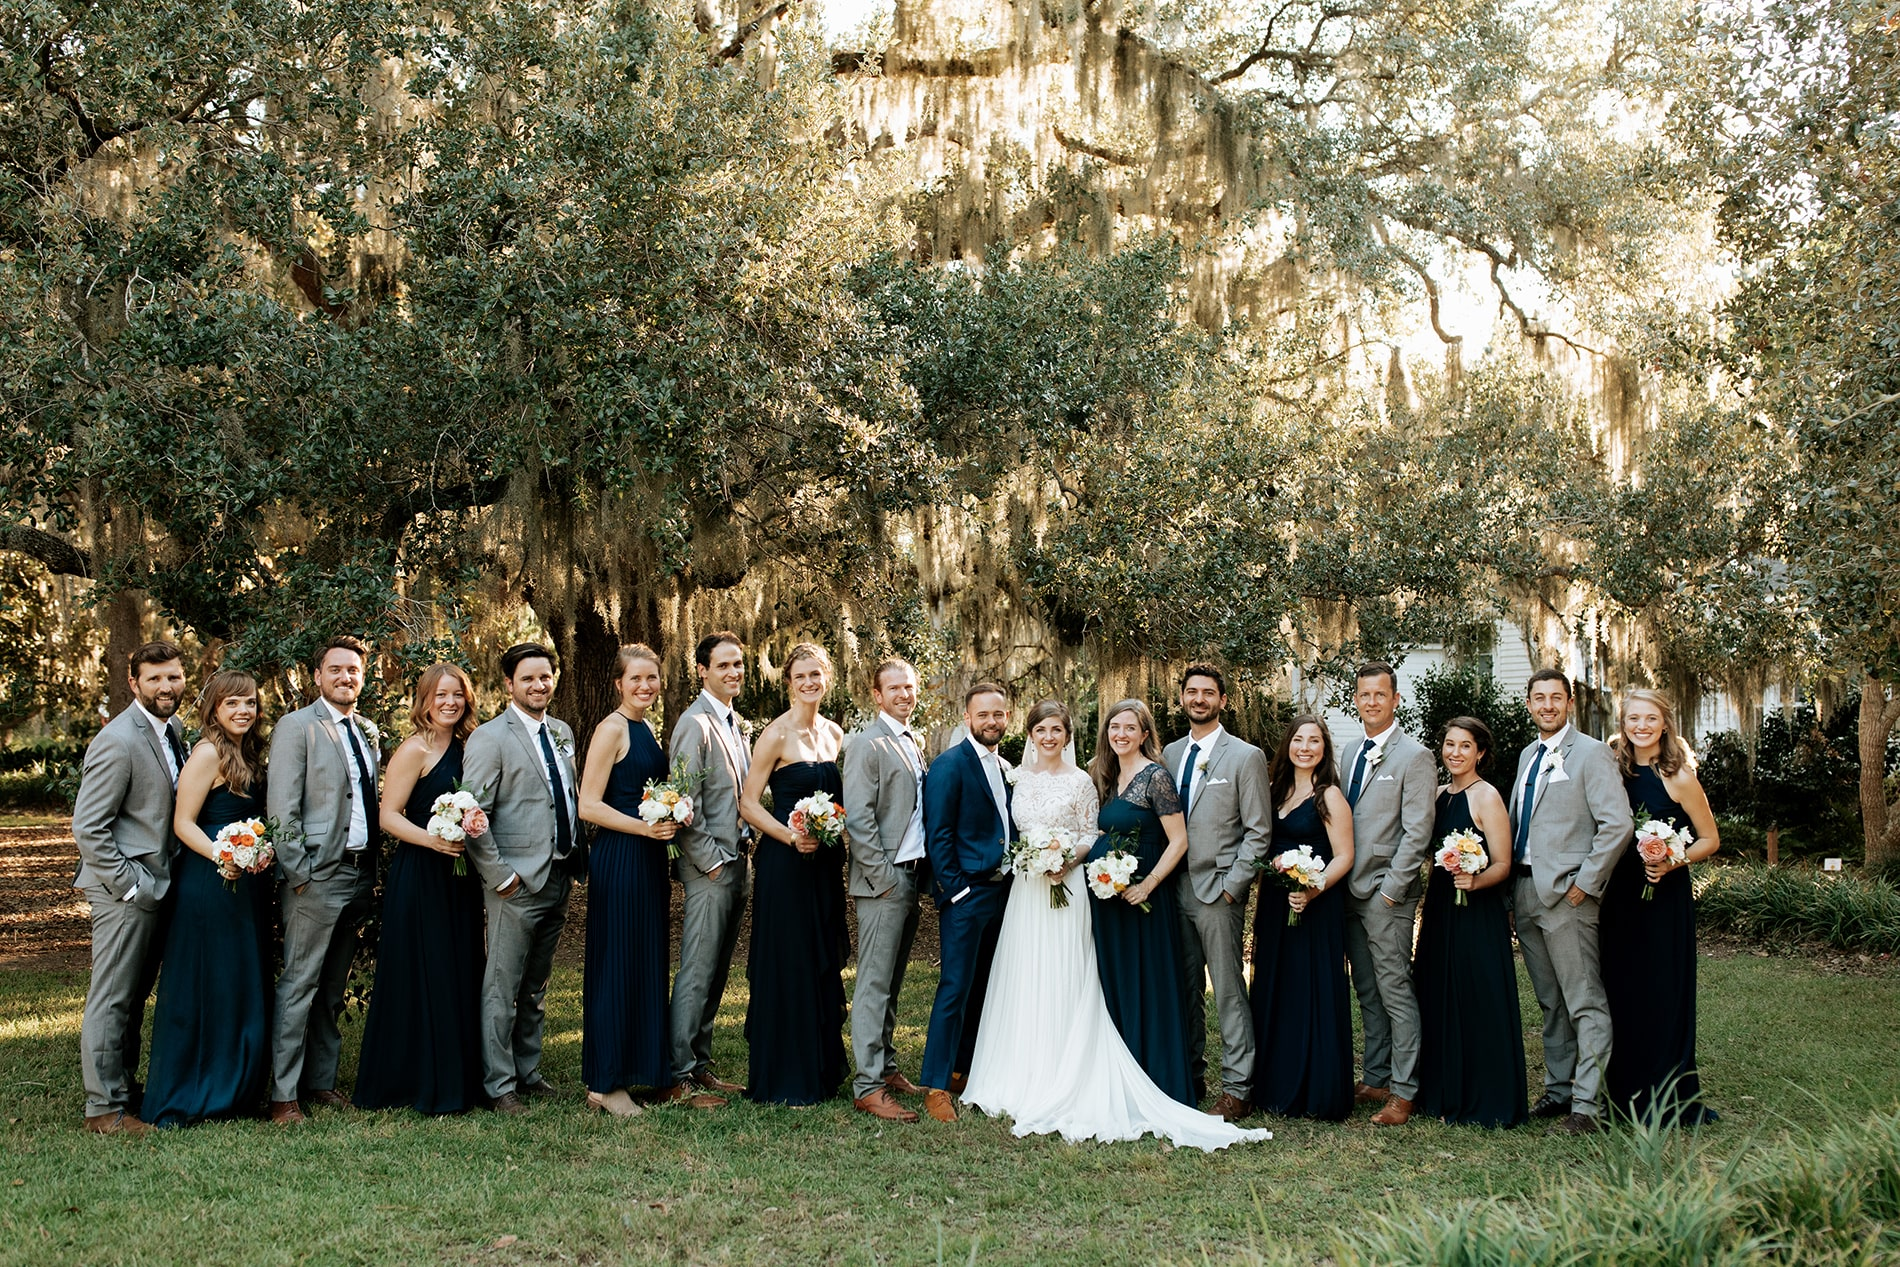 Wedding party at the Mary Grace and Judd Kennedy wedding.